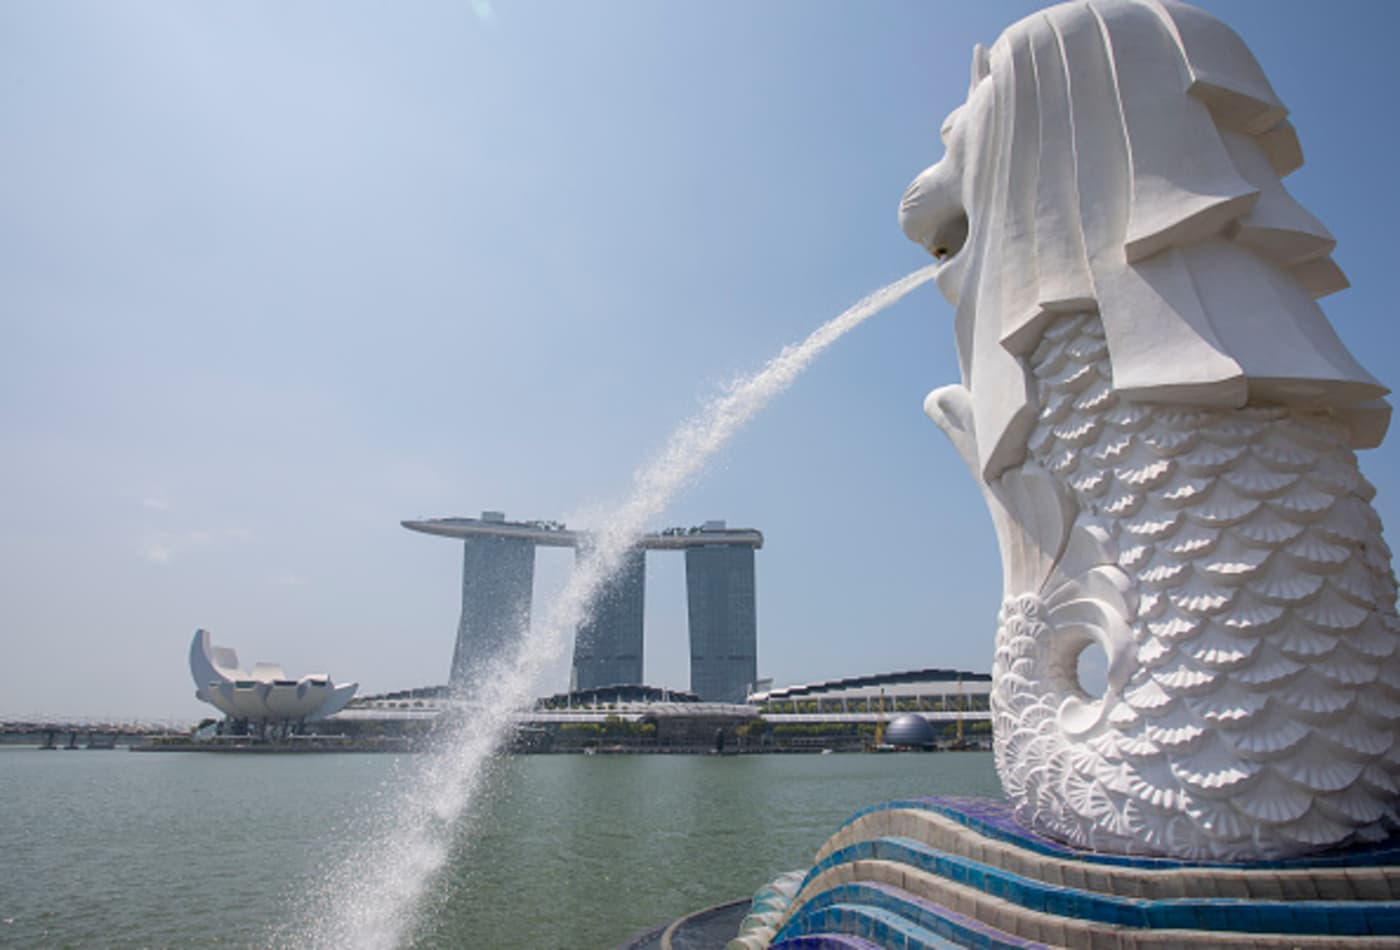 Singapore sets aside $4 billion to help businesses and households amid coronavirus outbreak